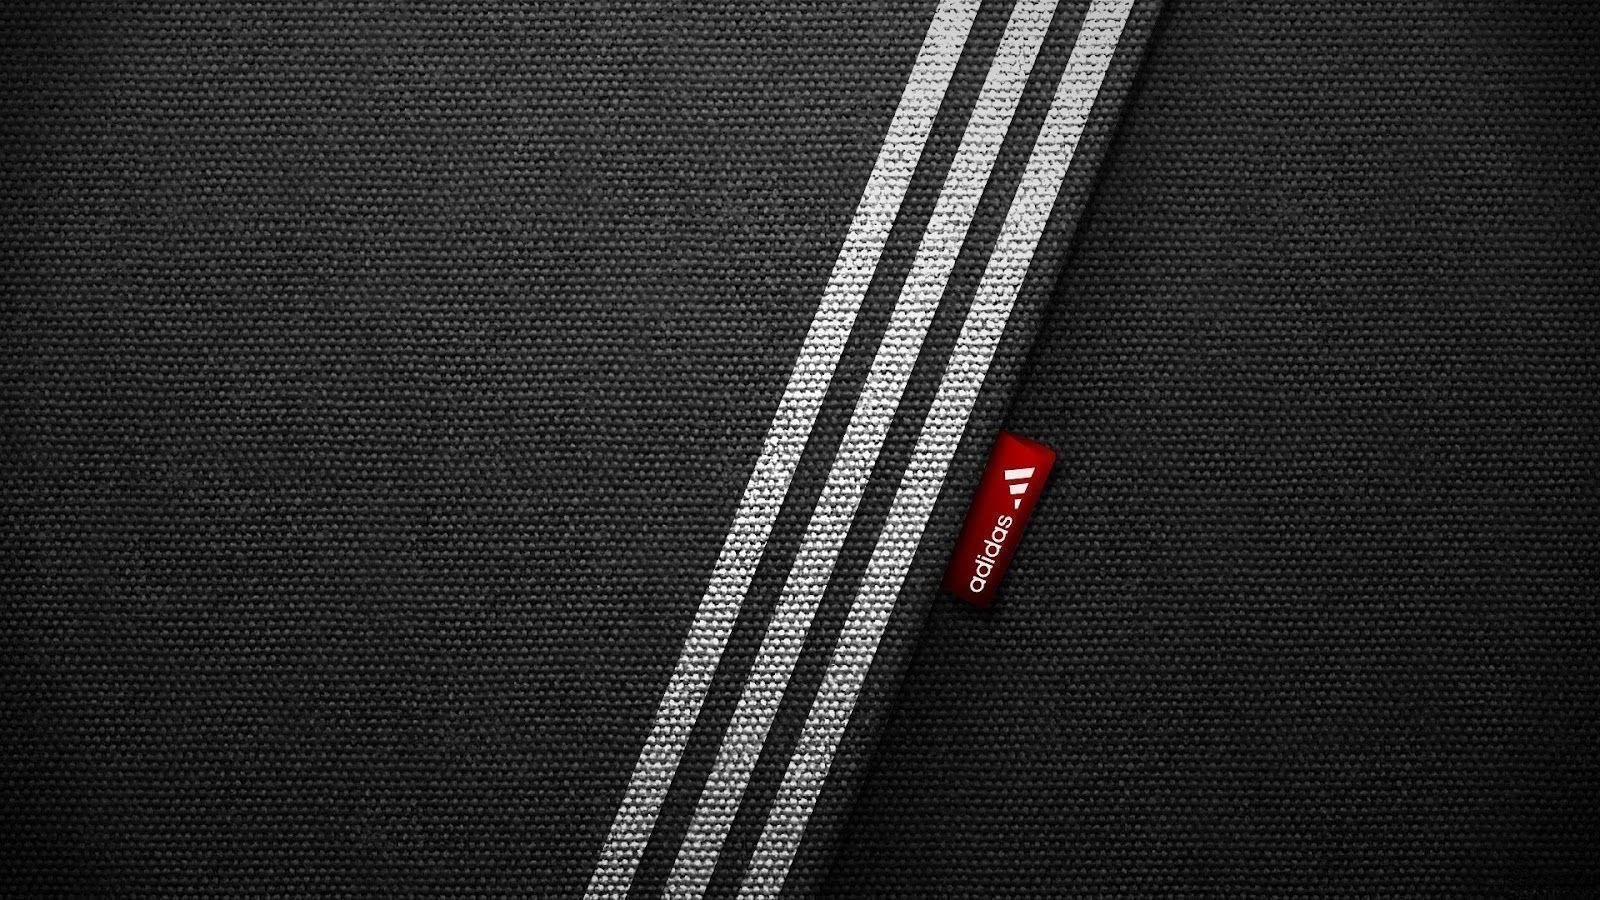 adidas logo hd wallpaper